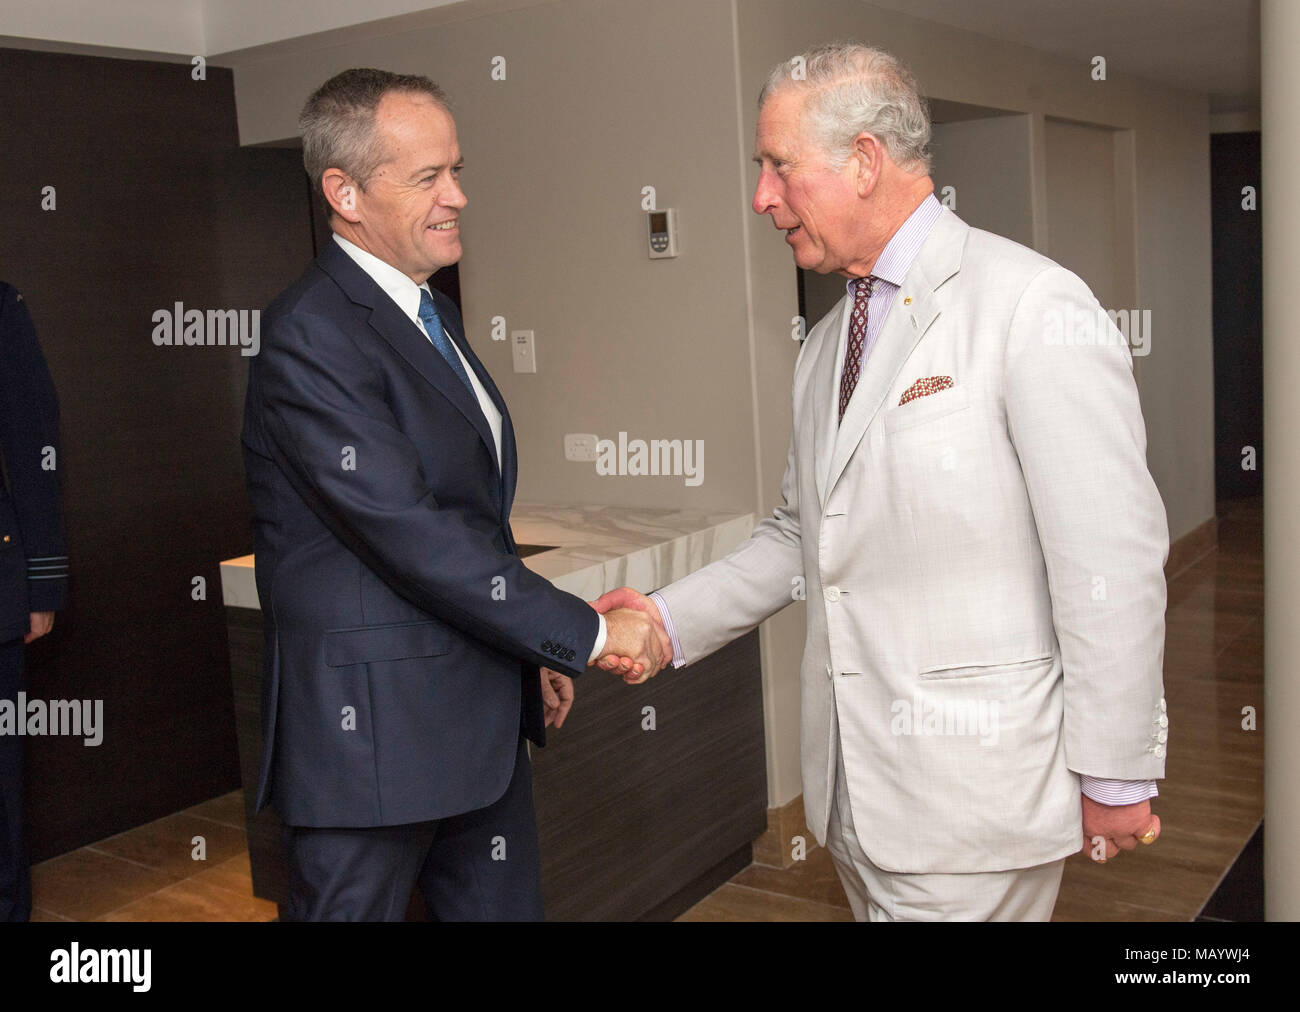 The Prince Of Wales Right Meeting With Leader Of The Australian